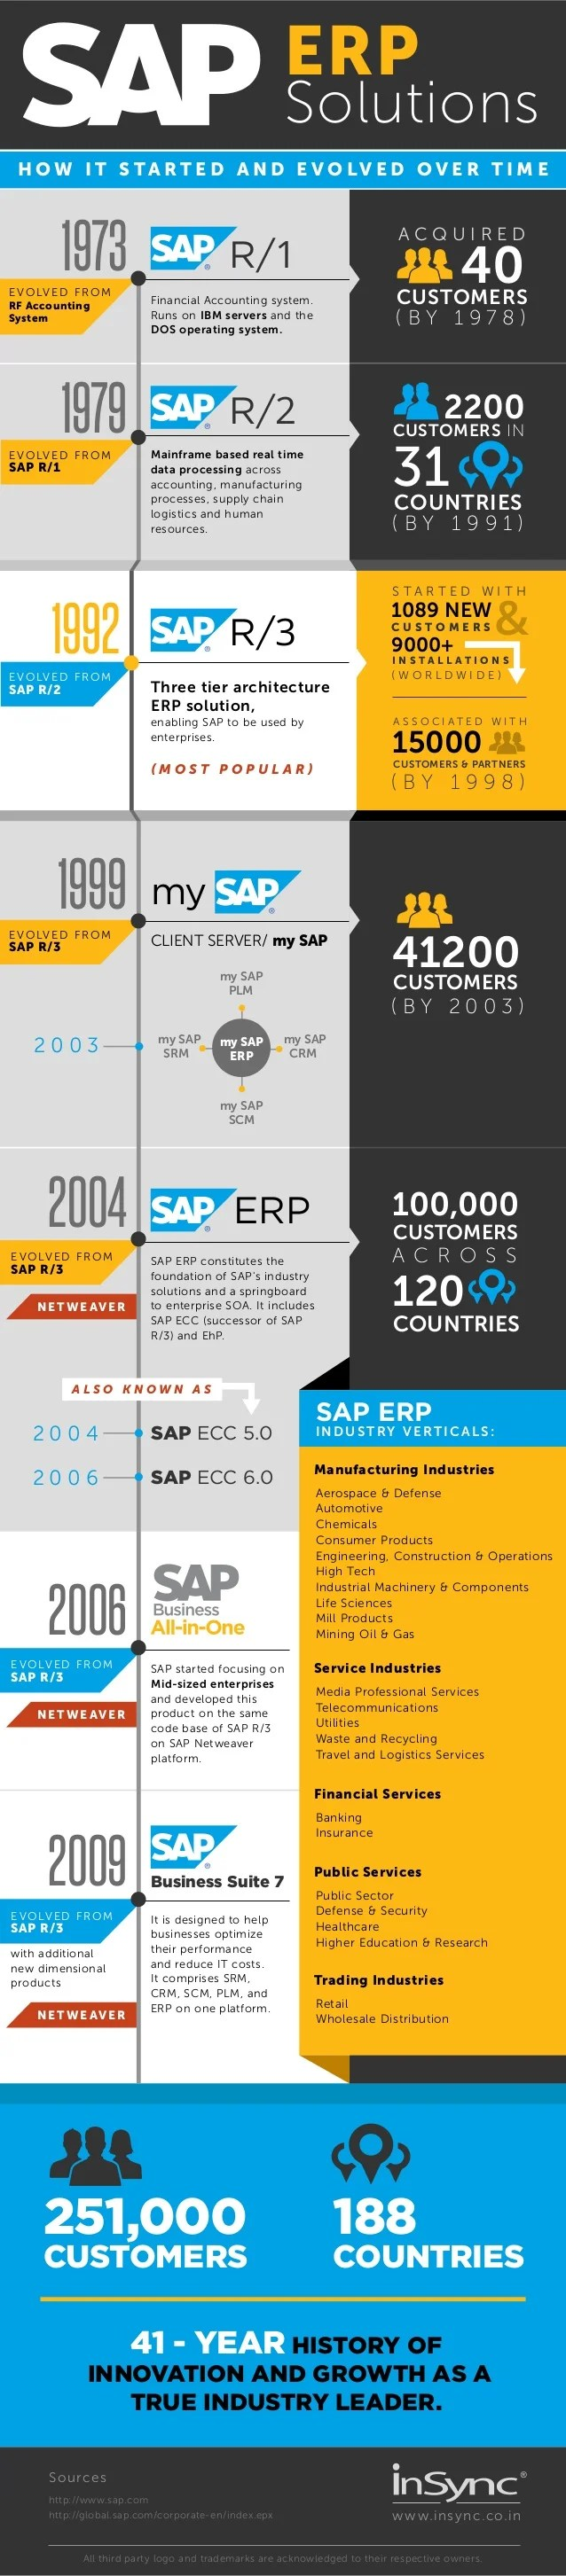 SAP ERP Solutions - How It Evolved Over Time